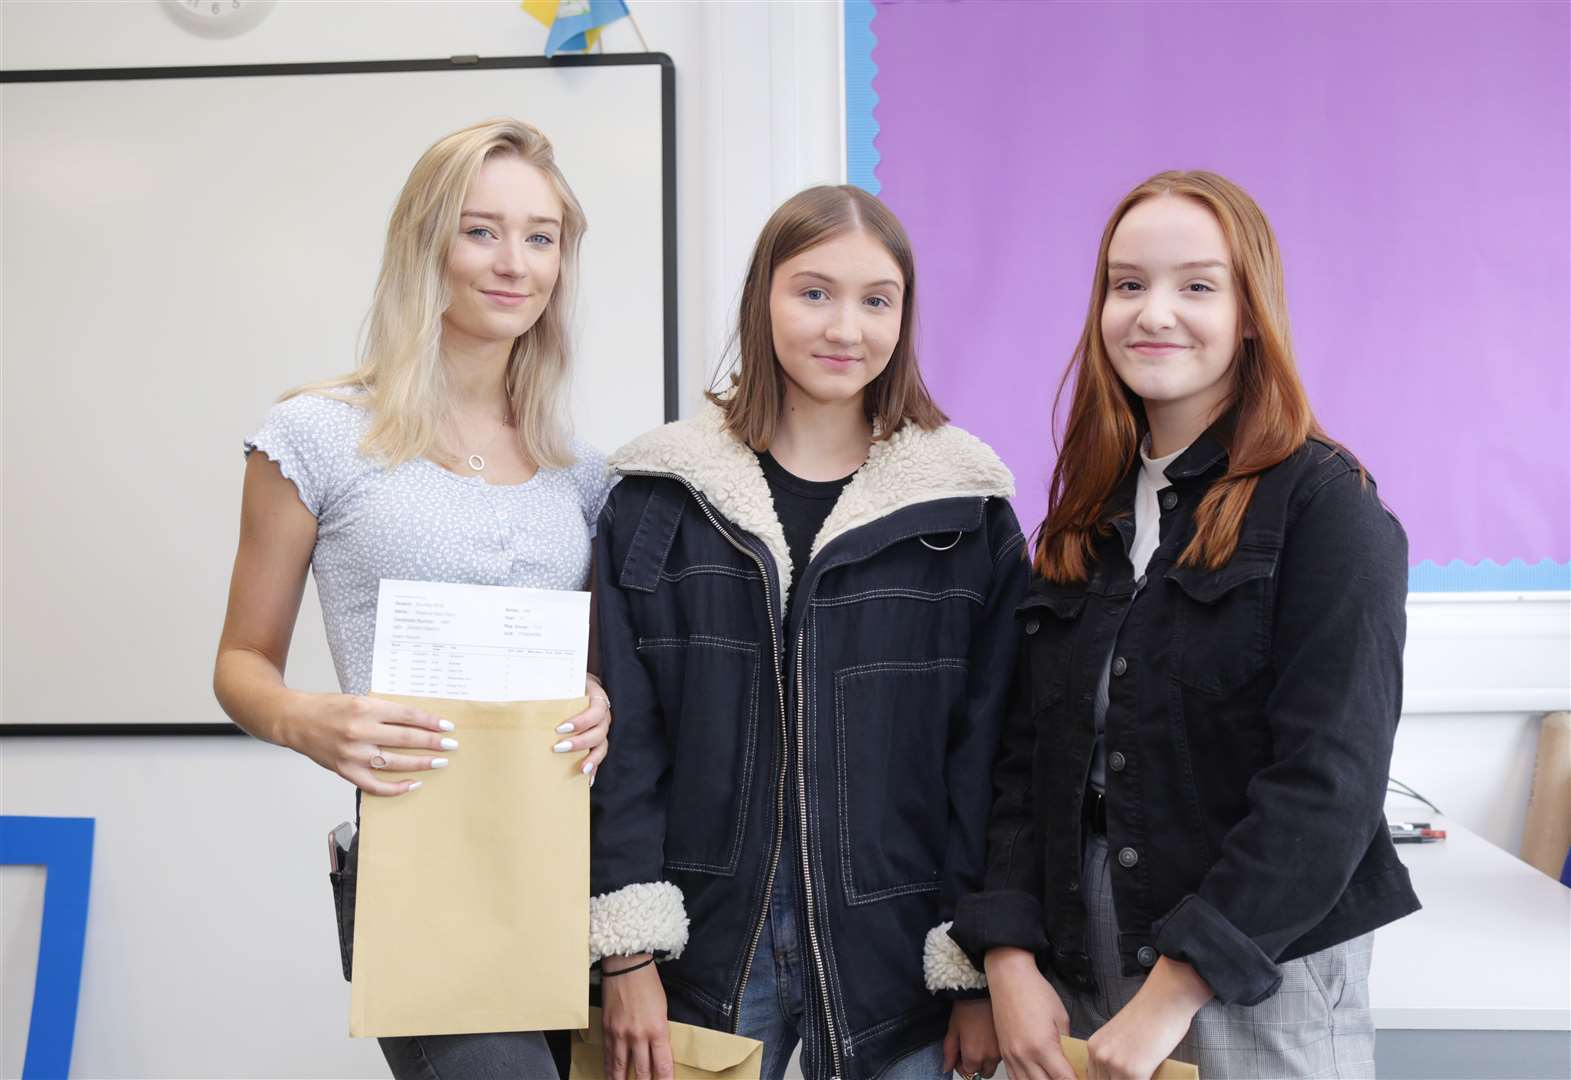 Record-breaking GSCE results at Toot Hill School